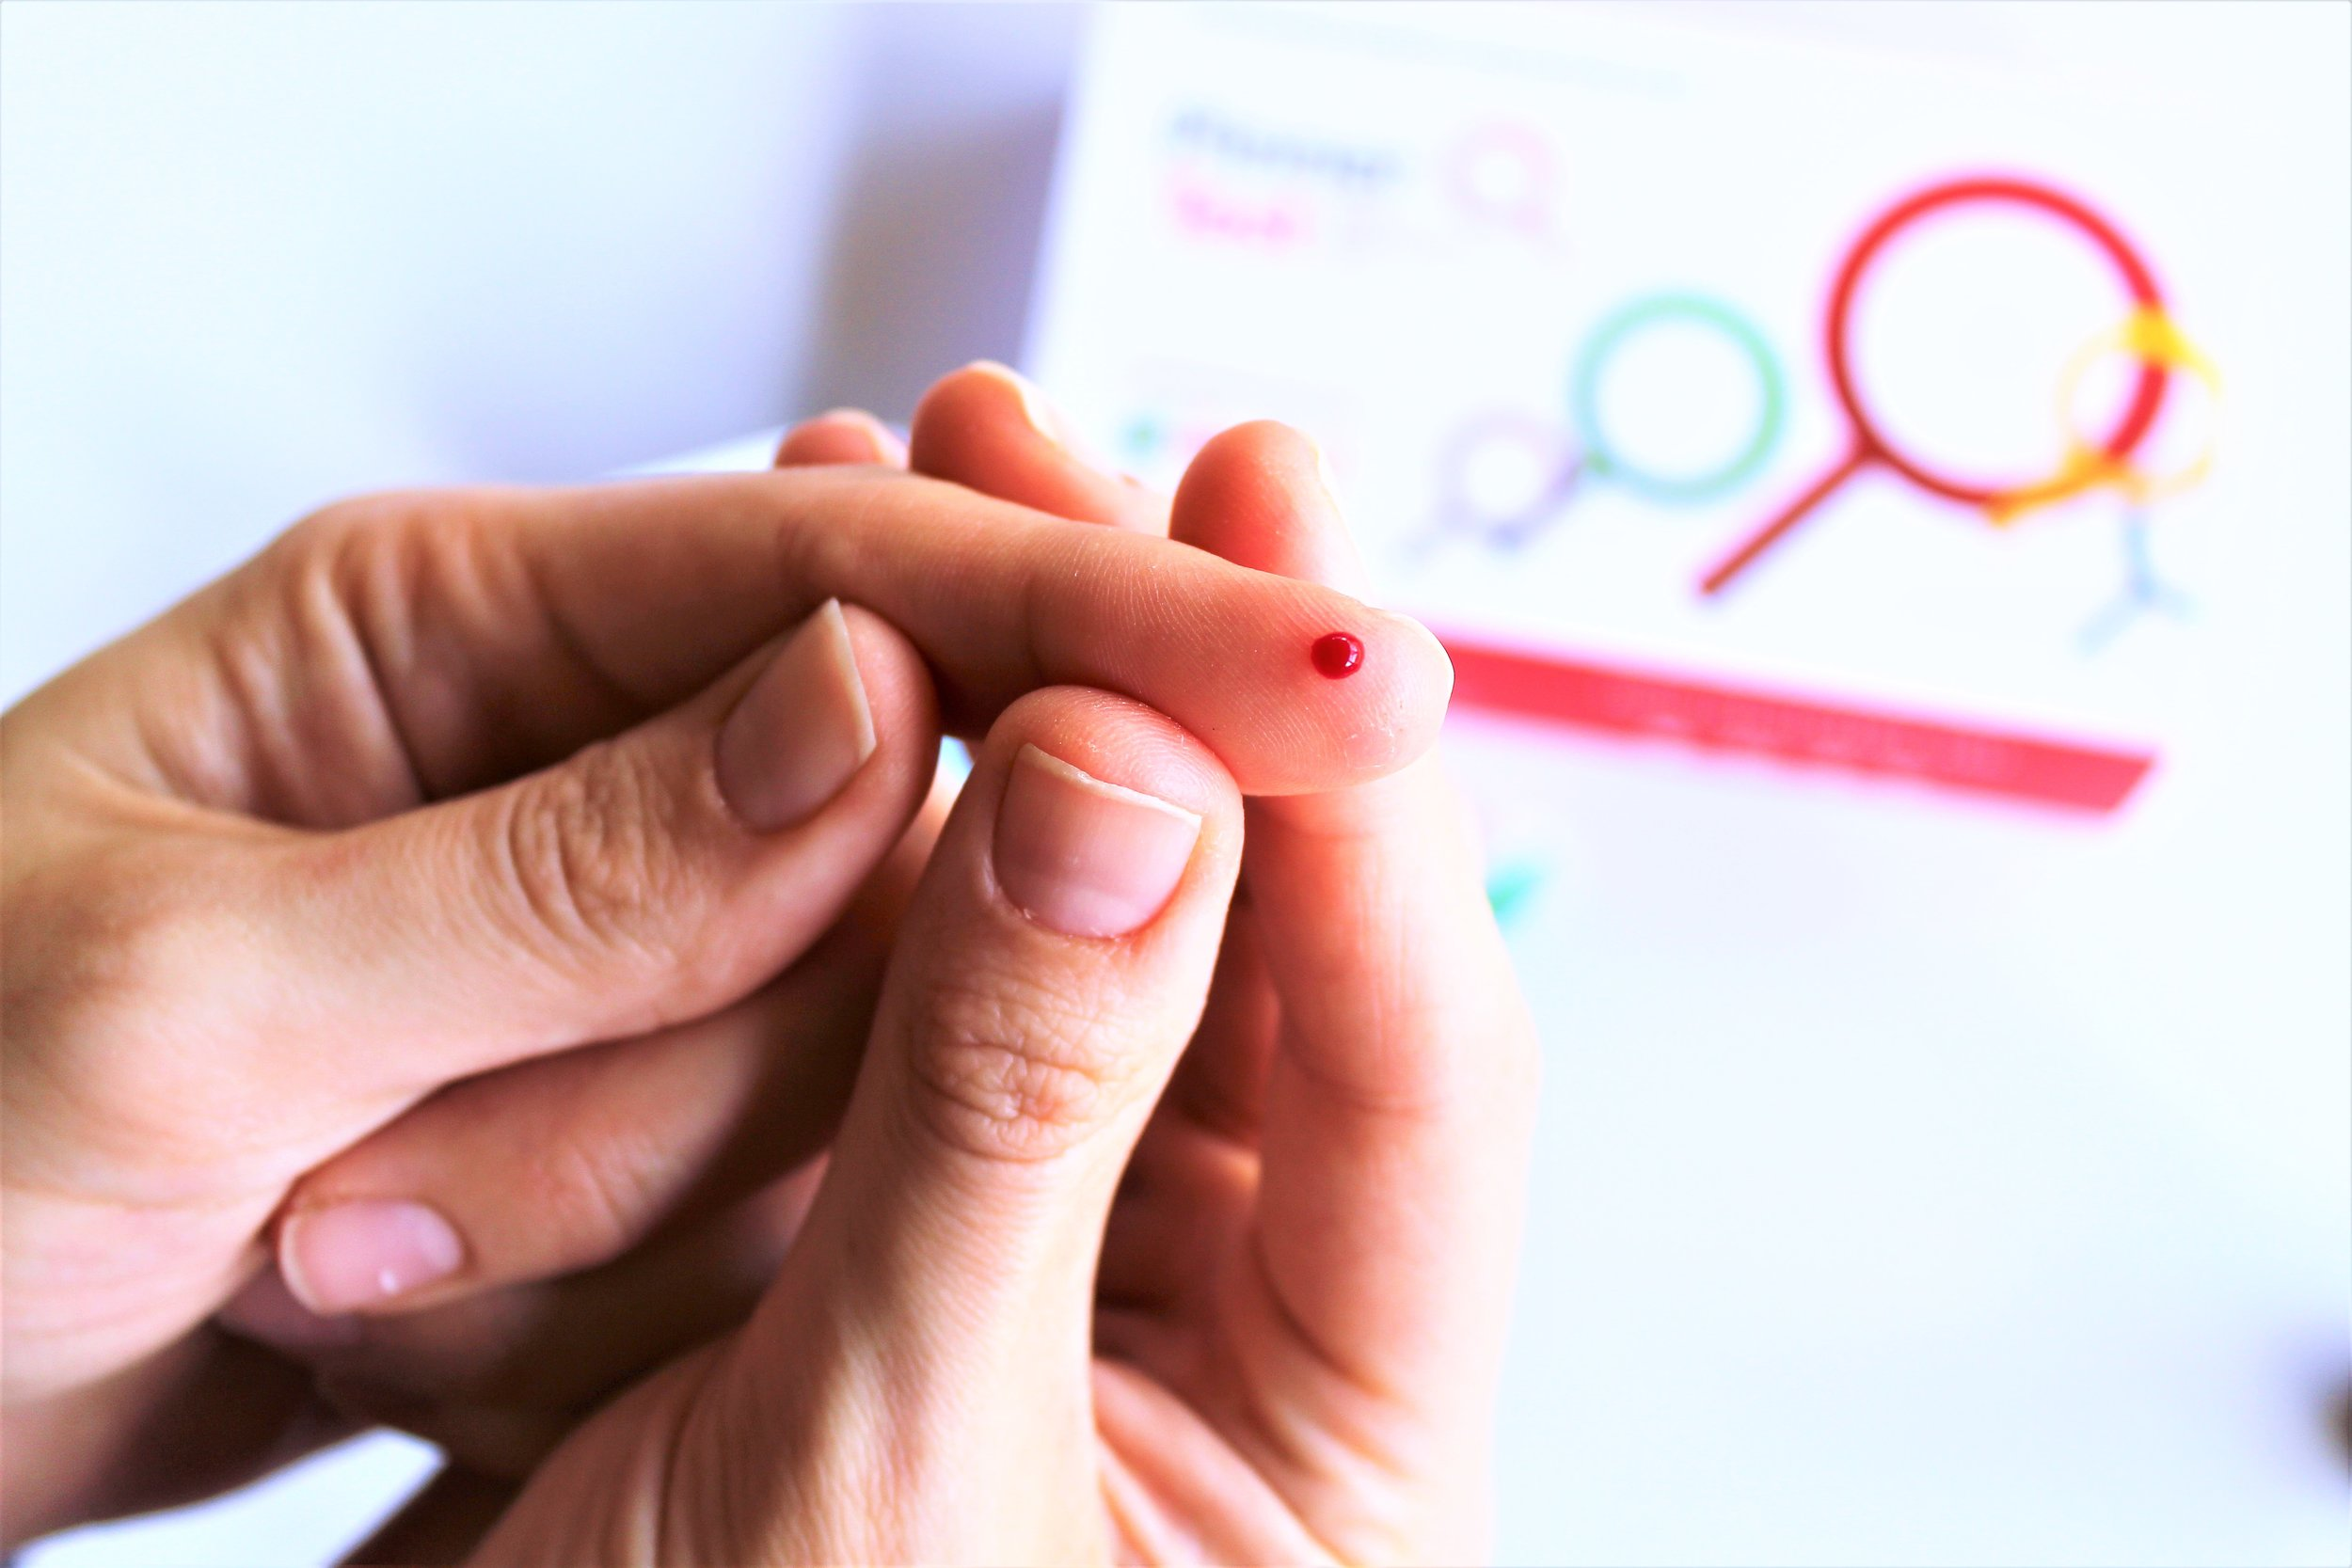 small finger prick with blood for pinner test box kit